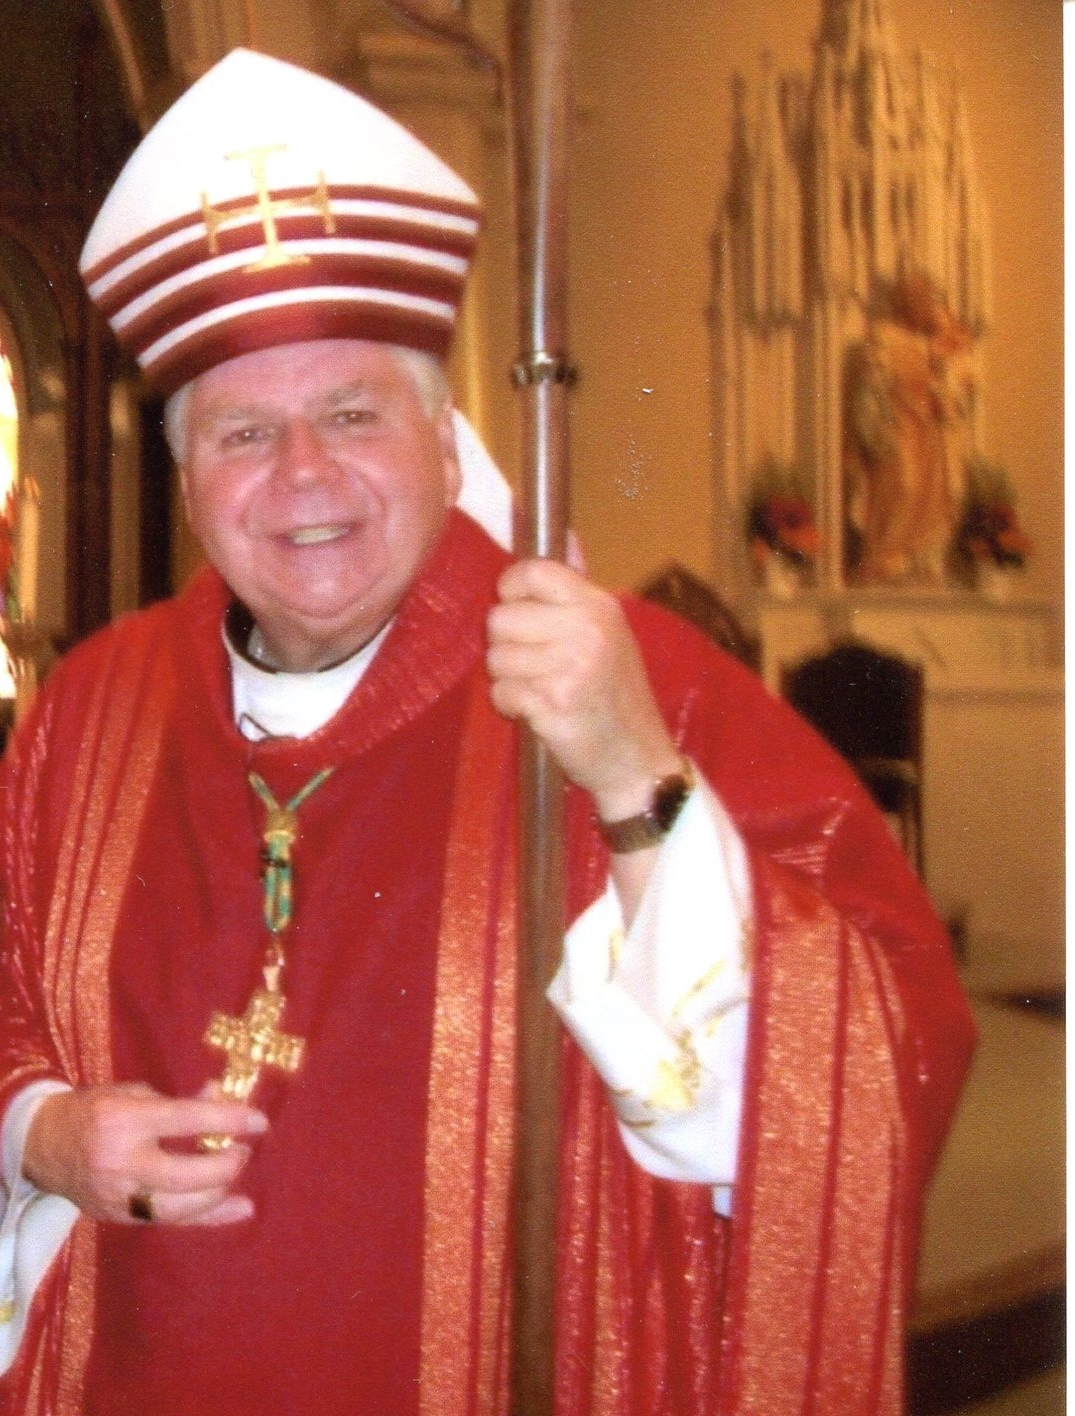 The Most Reverend Paul J. Bradley, Bishop of Kalamazoo Installed: June 5, 2009